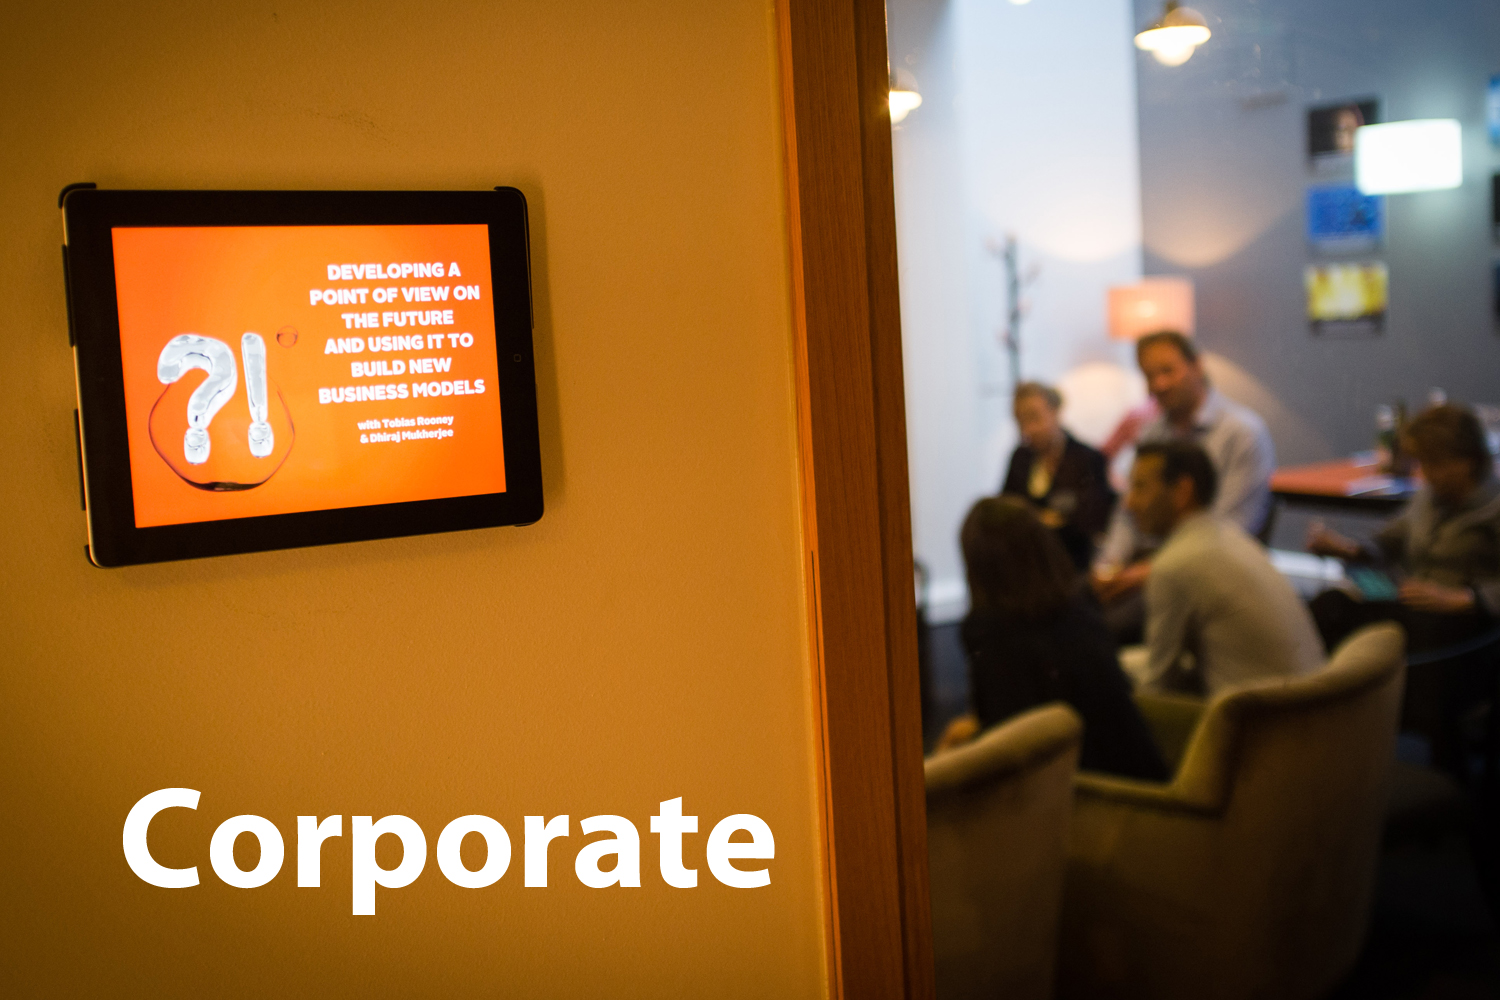 CORPORATE PHOTOGRAPHY GALLERY